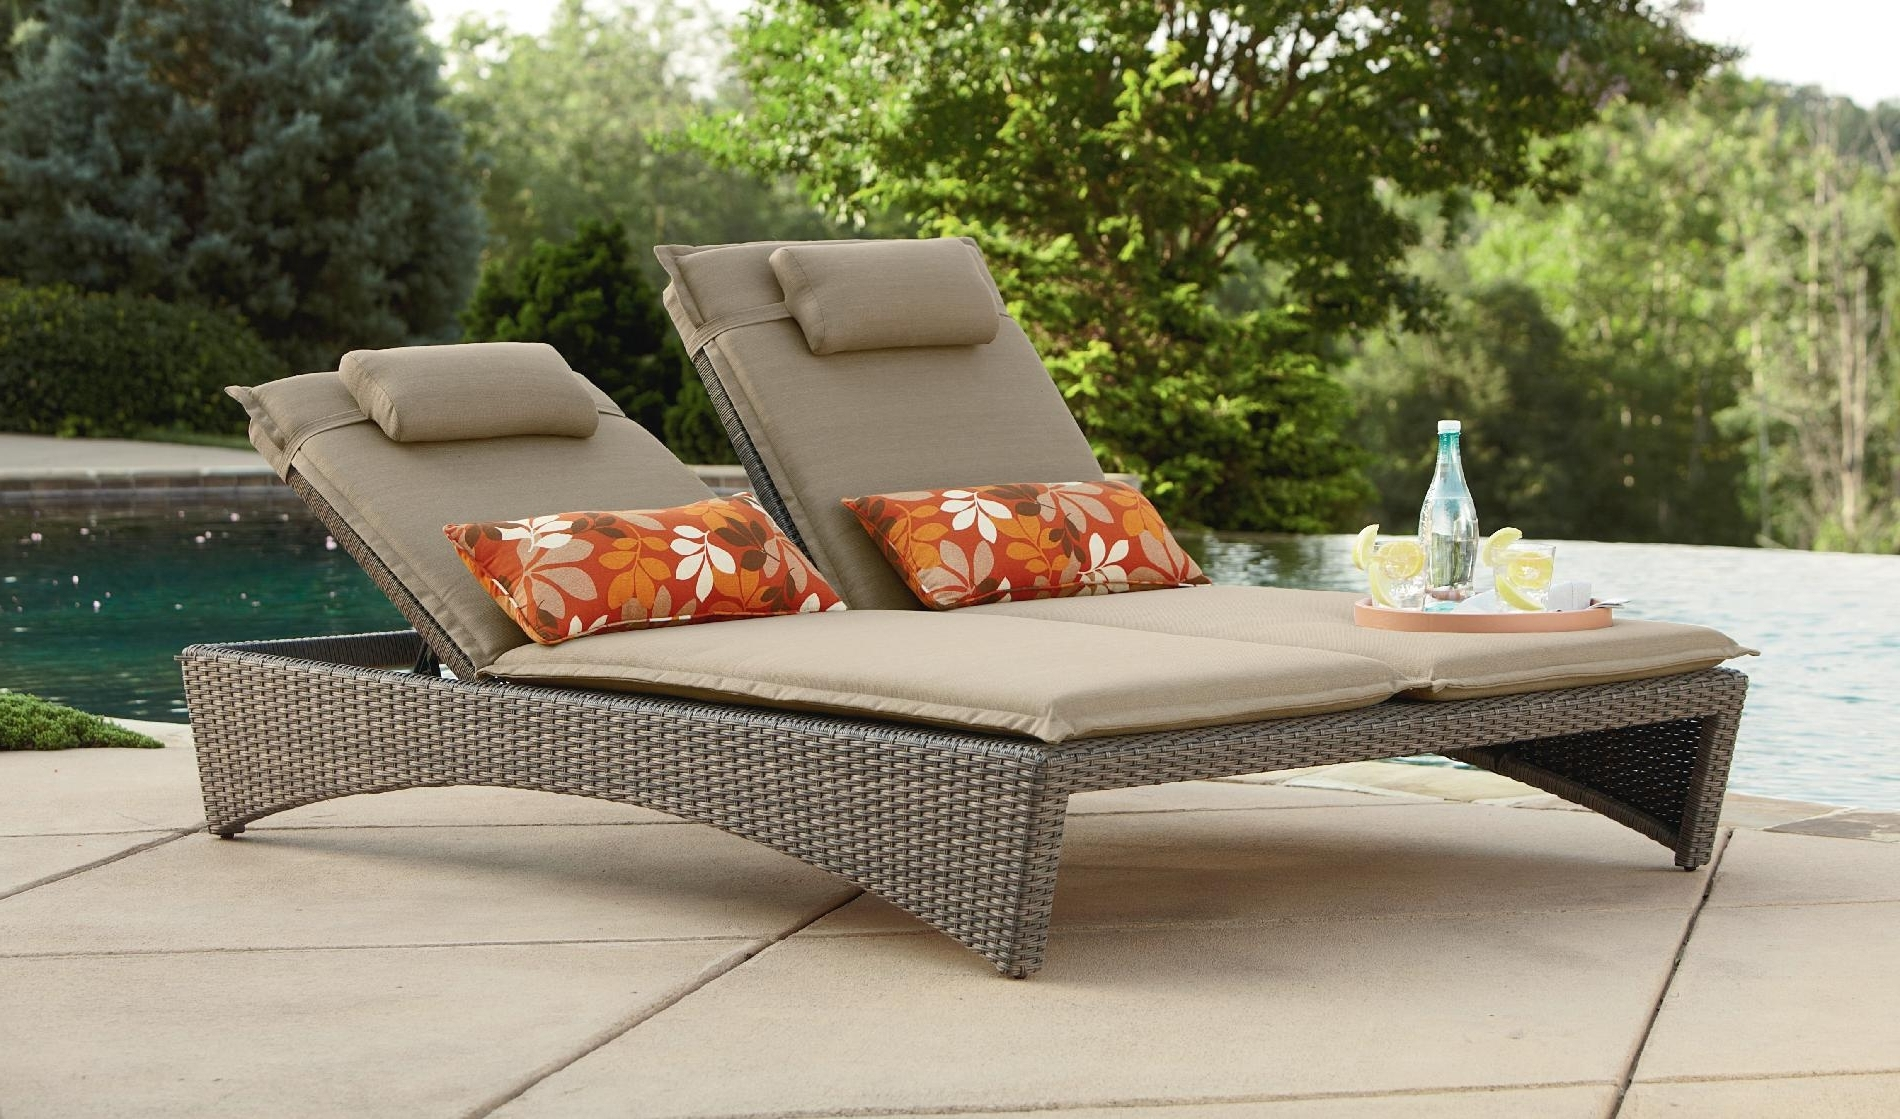 Chaise Lounge Chairs At Sears Regarding Well Known Sears Chaise Lounge Chairs Patio Furniture • Lounge Chairs Ideas (View 5 of 15)